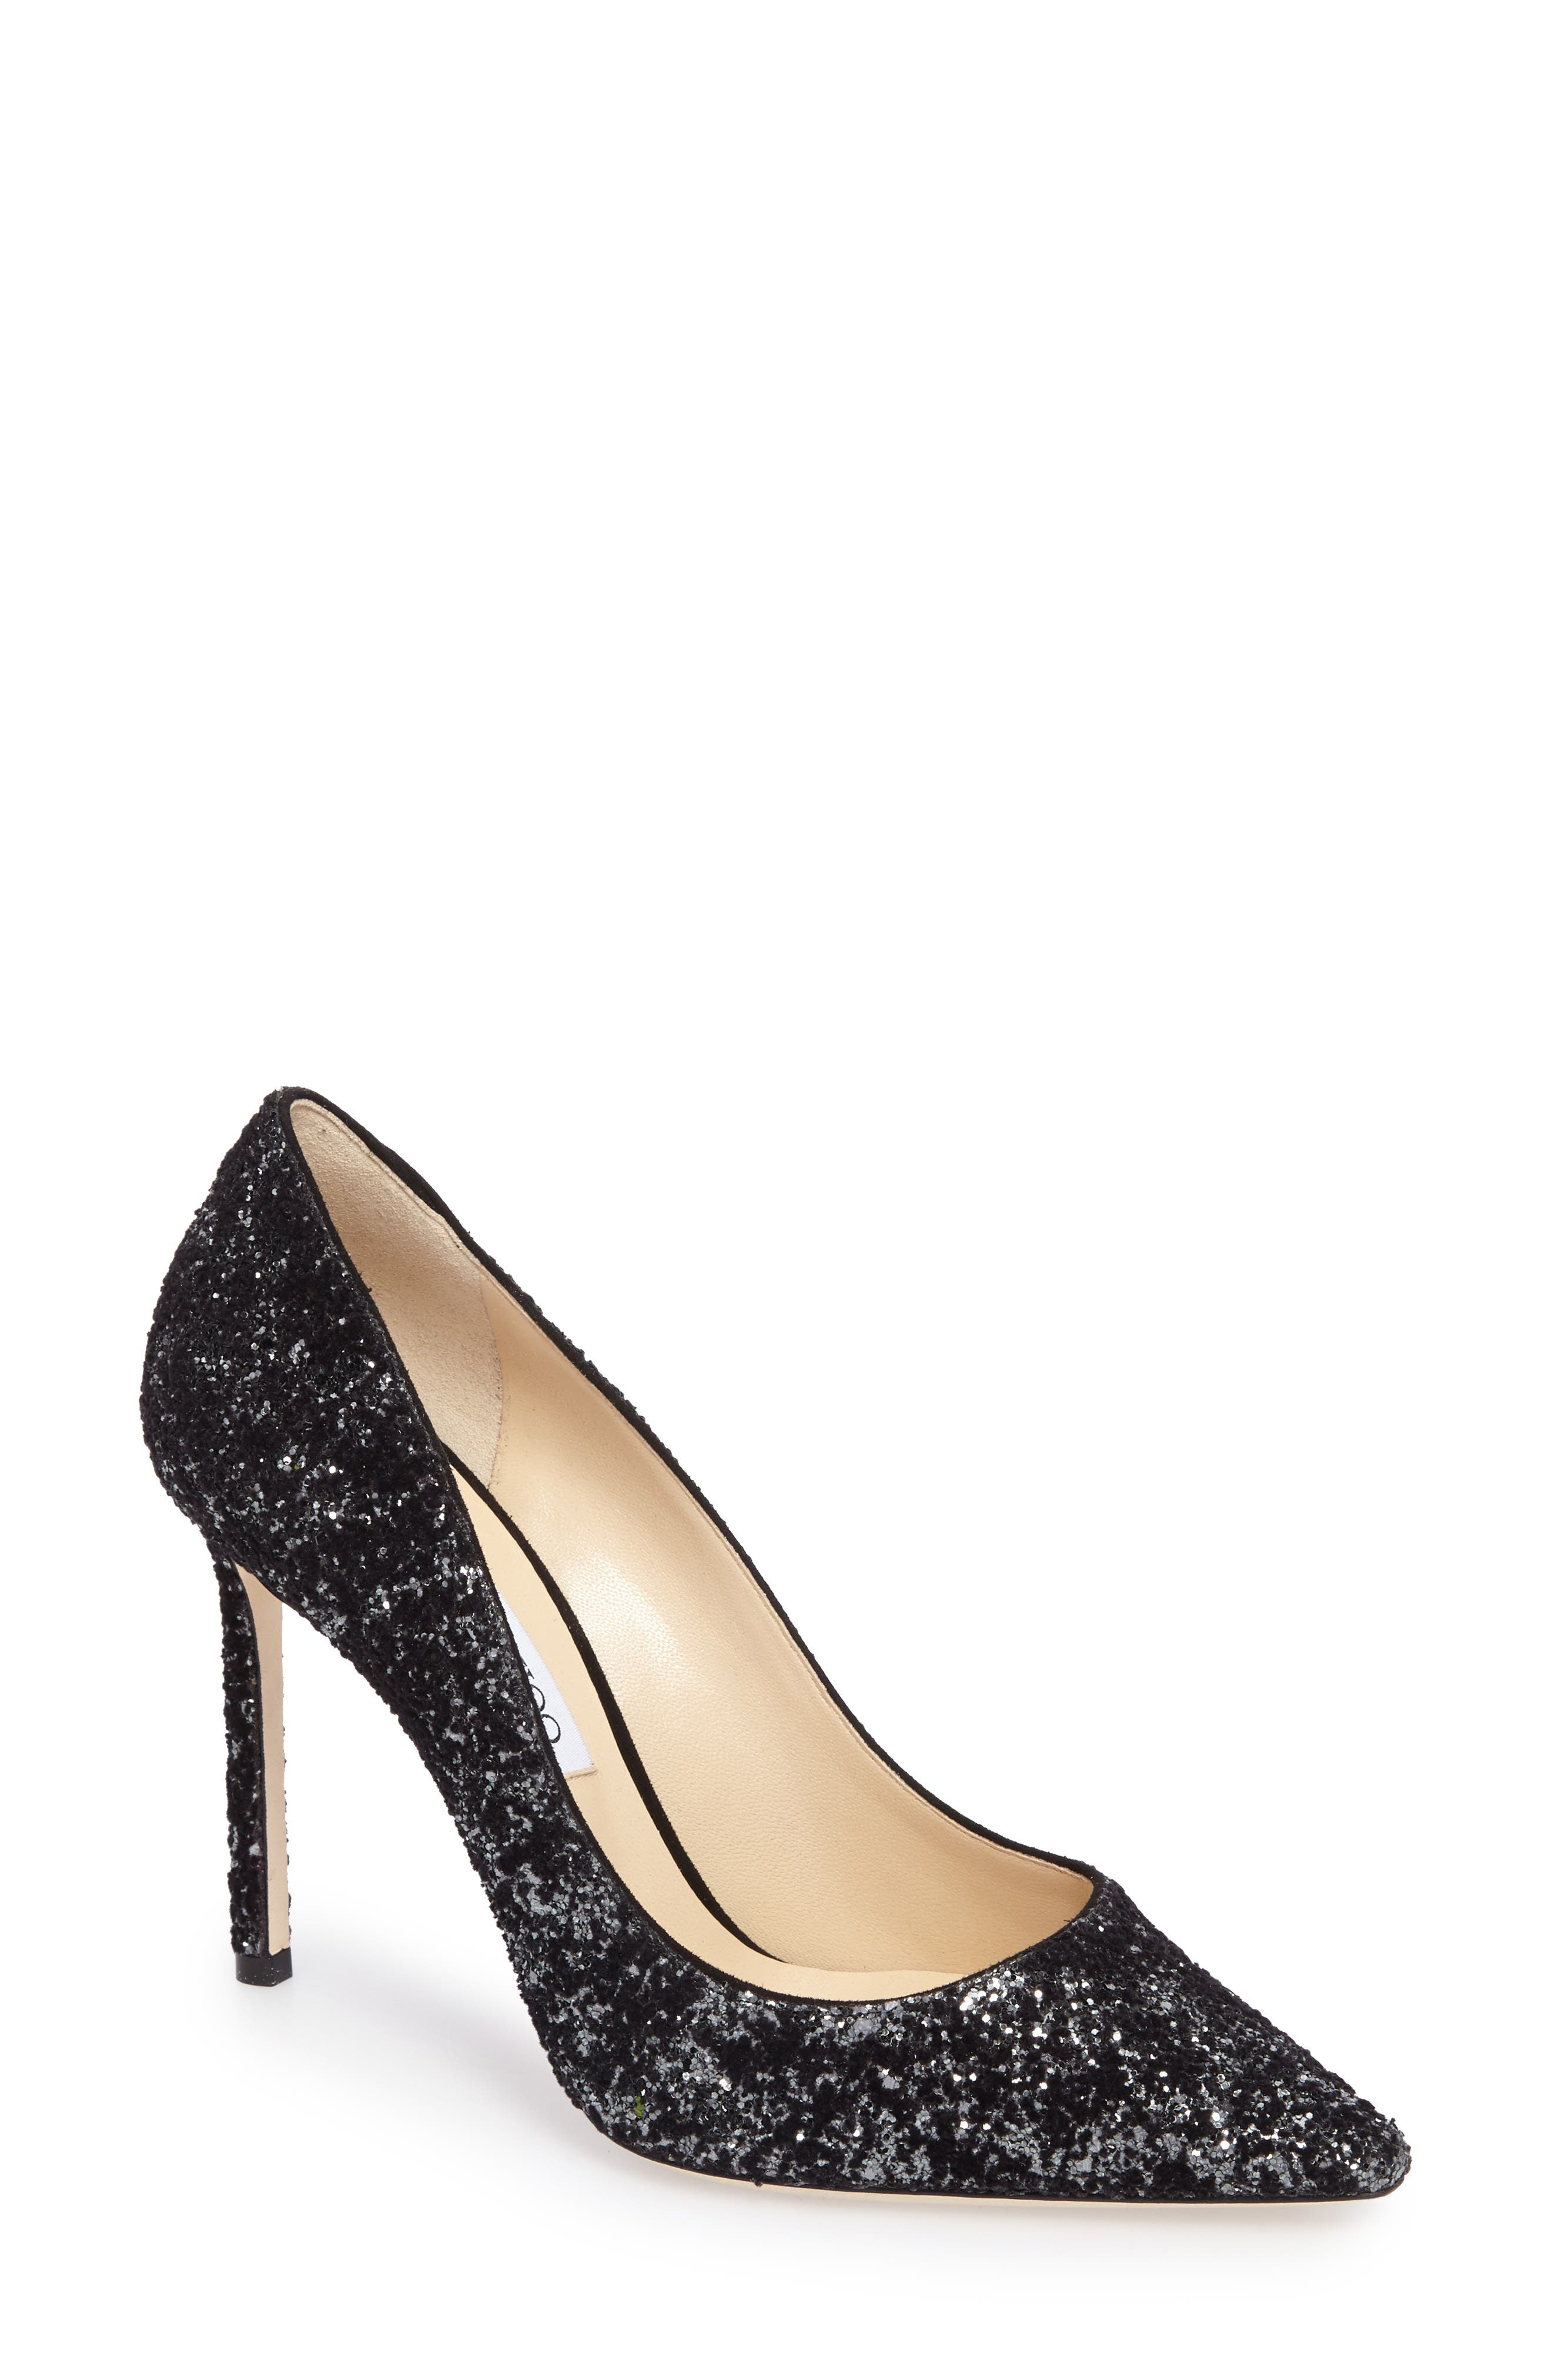 Romy Textured Glitter Pump,                             Main thumbnail 1, color,                             Anthracite/ Black